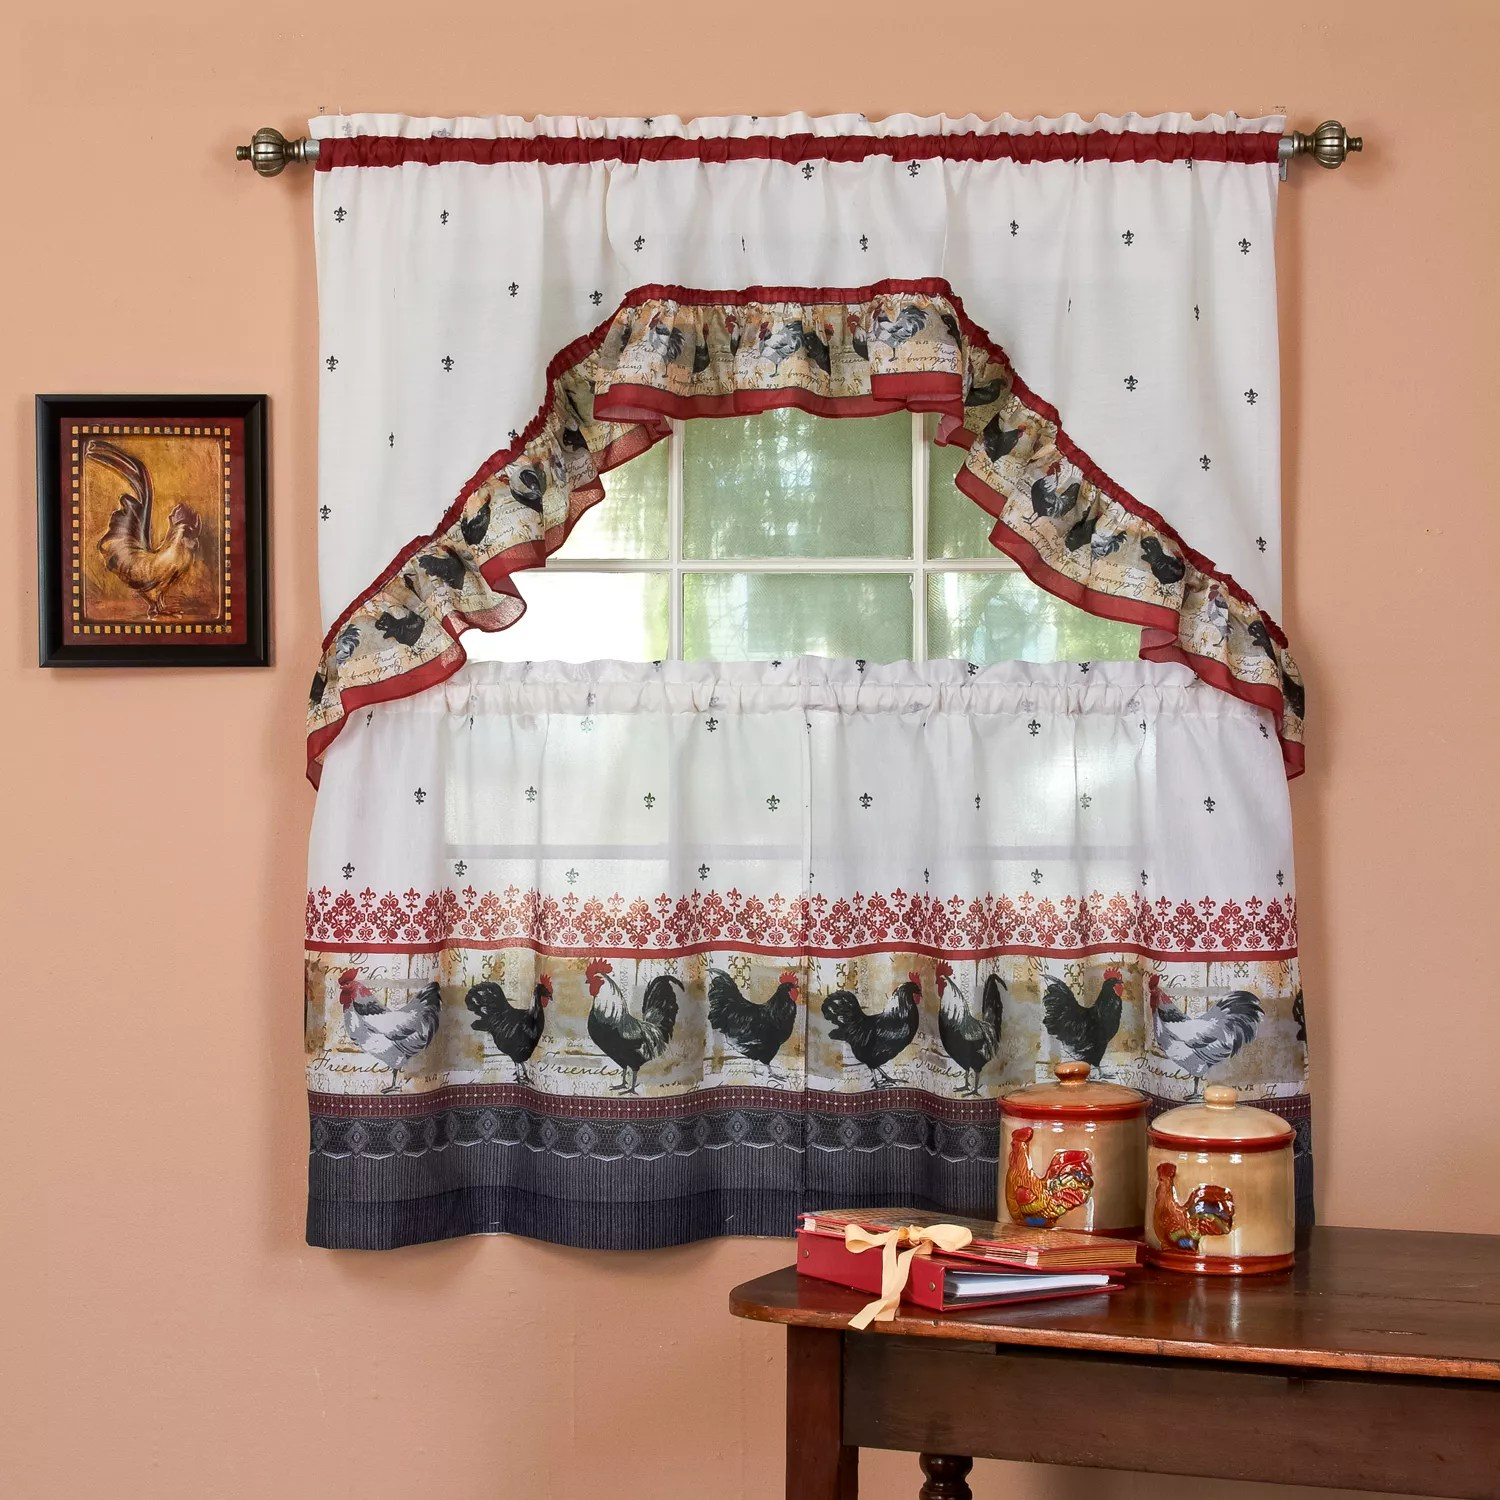 kitchen curtains kohls modern valances red drapes window treatments home decor kohl s rooster 3 piece swag tier curtain set